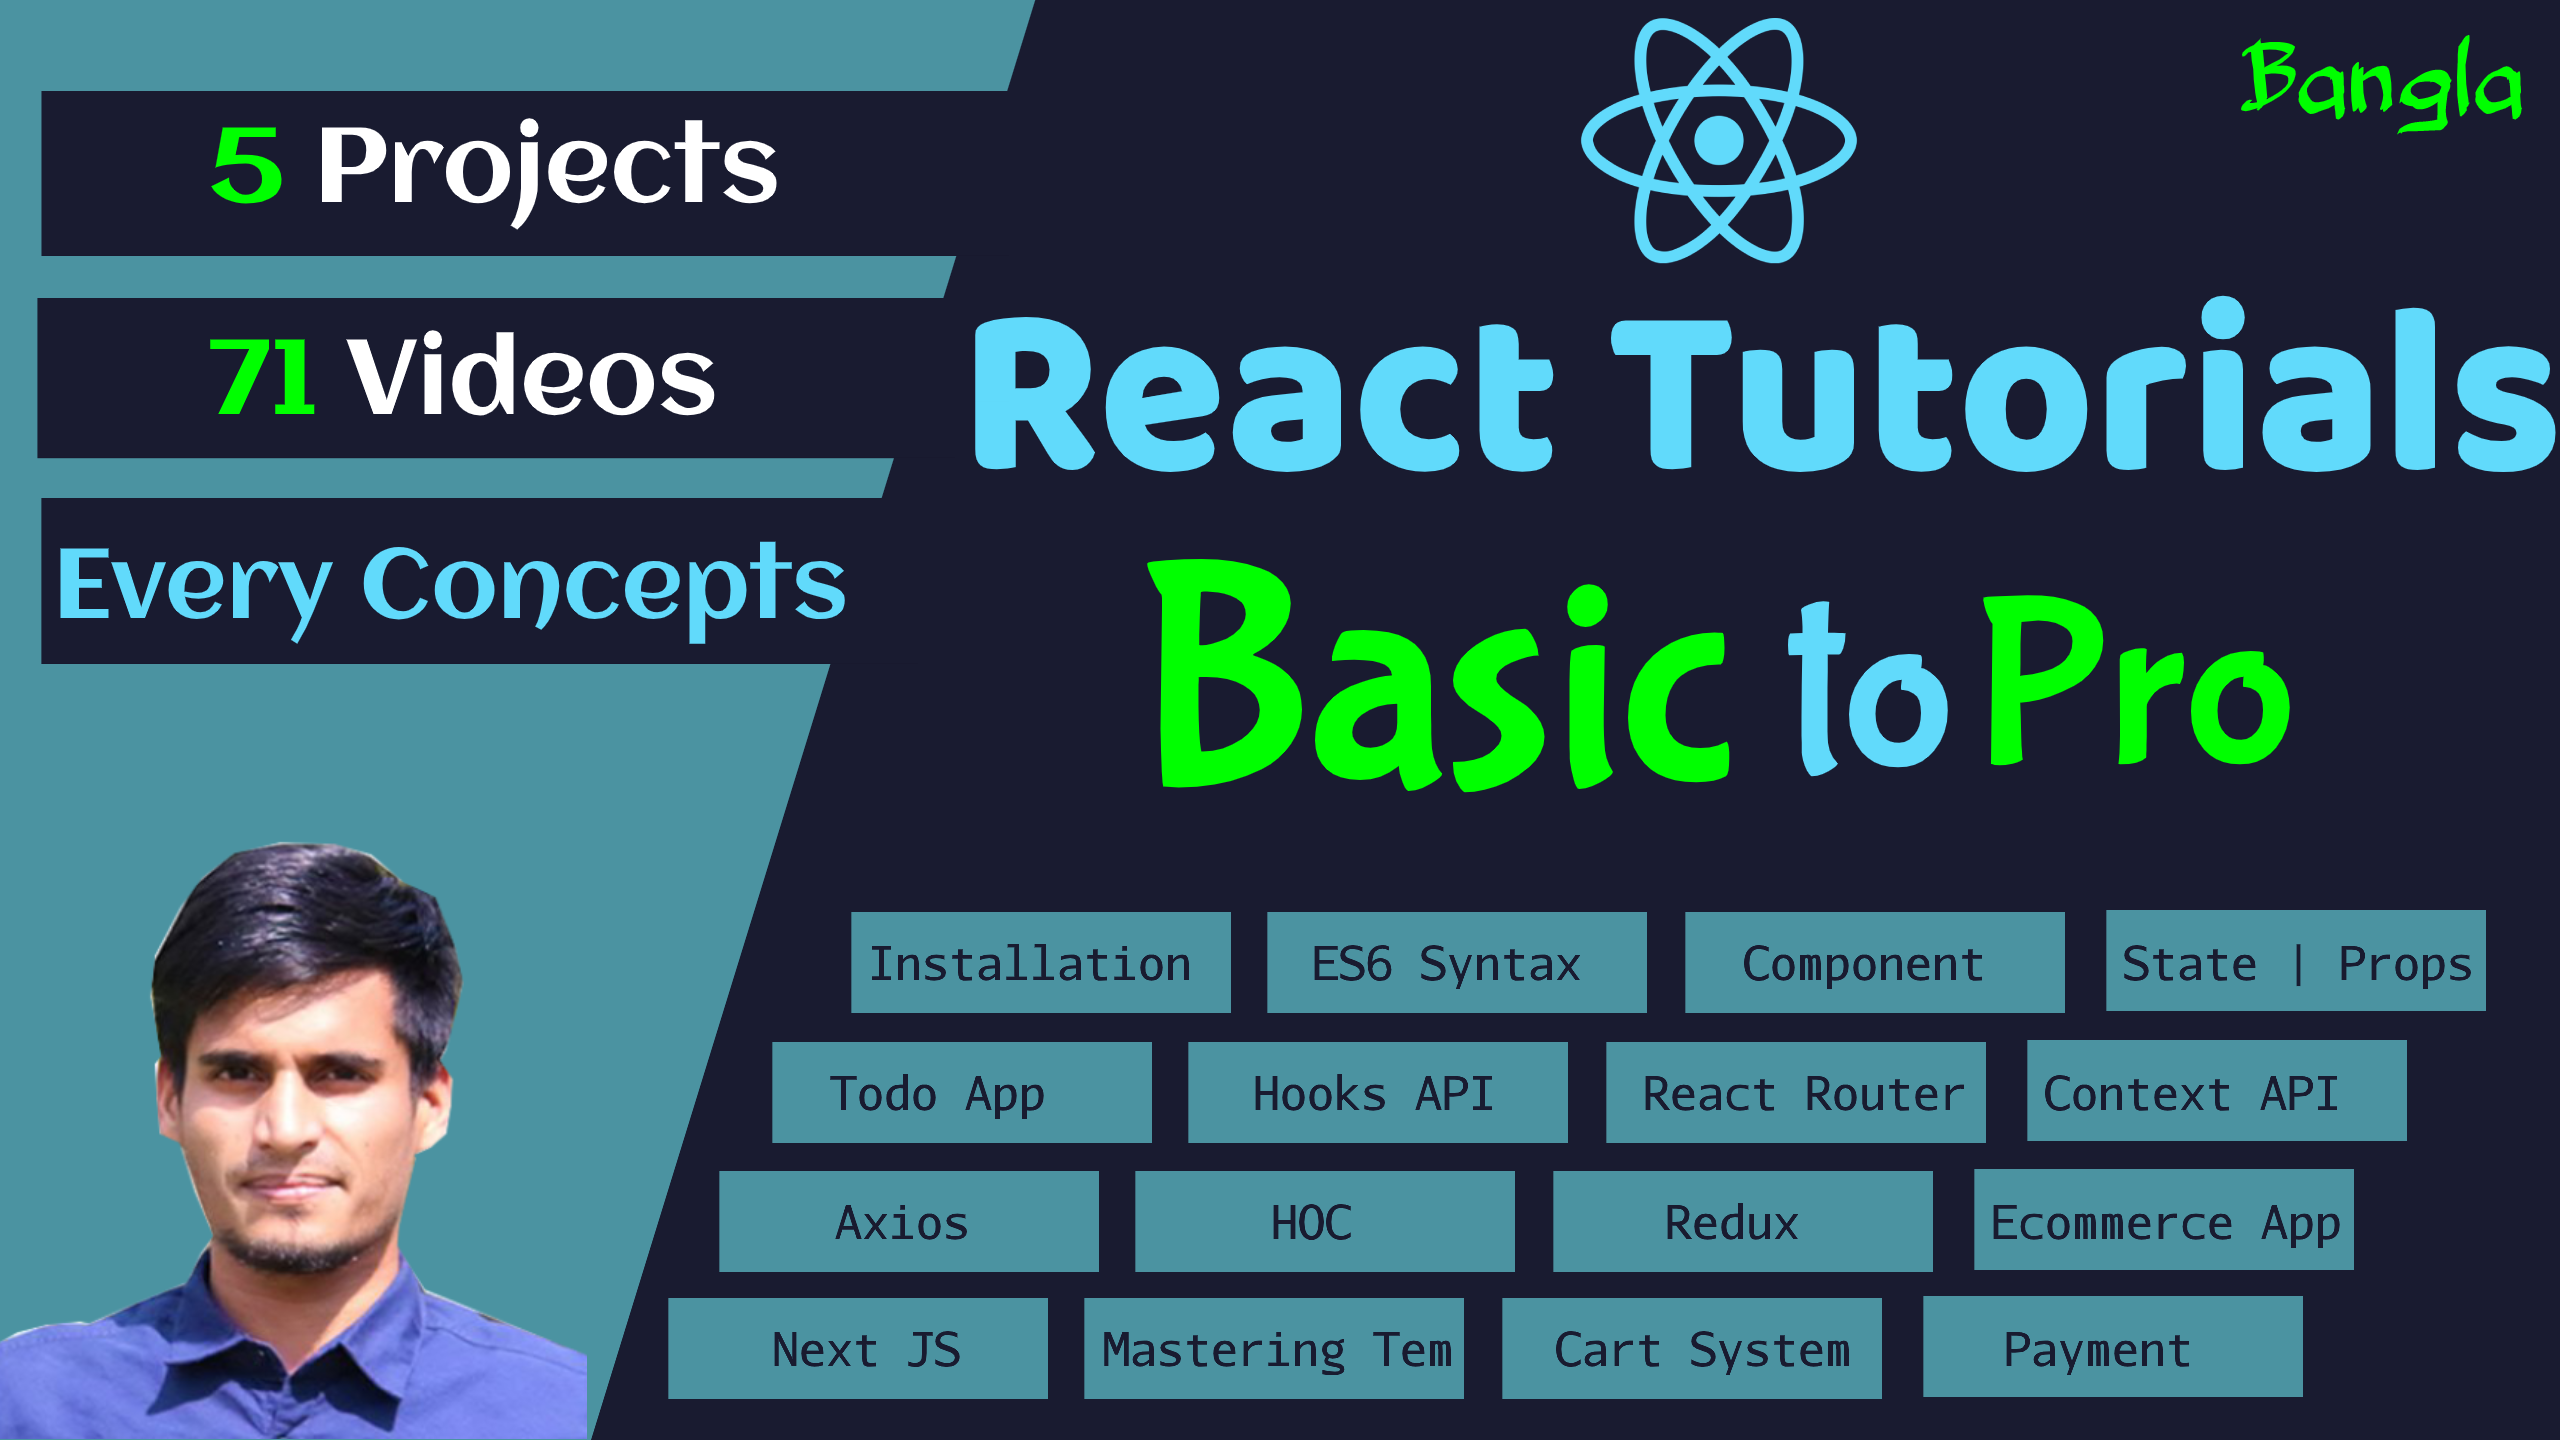 React Tutorials - Beginner to Pro - A Complete React Tutorial Series